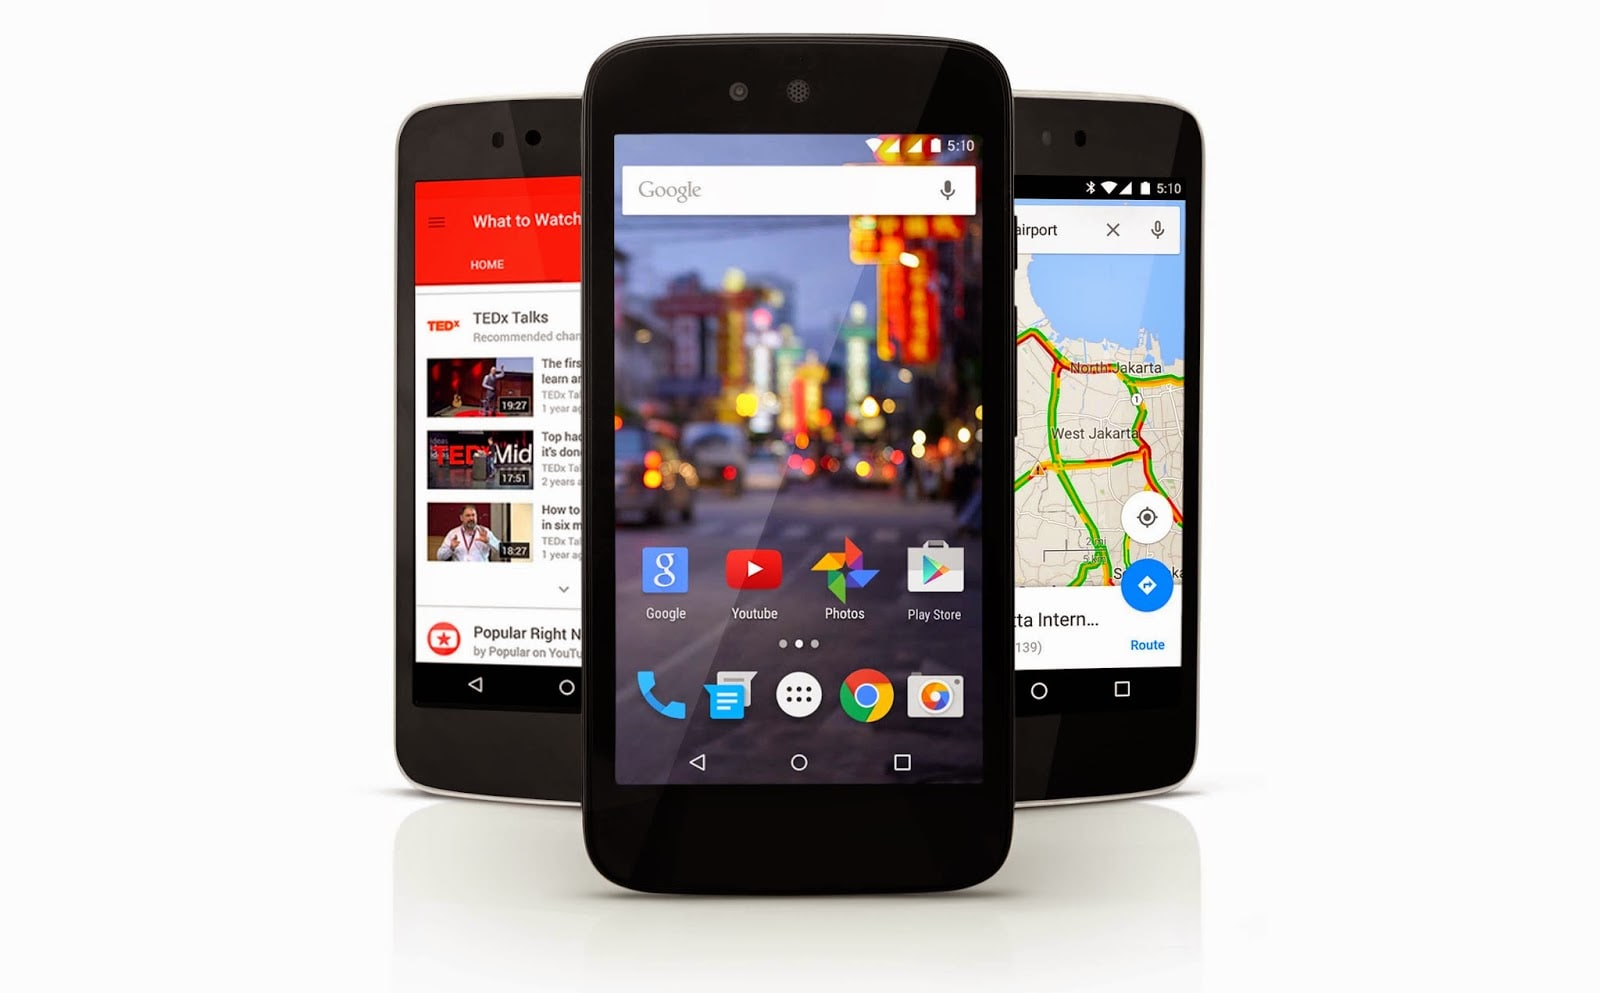 Android 5.1 Lollipop coming soon, spotted on Android One ...